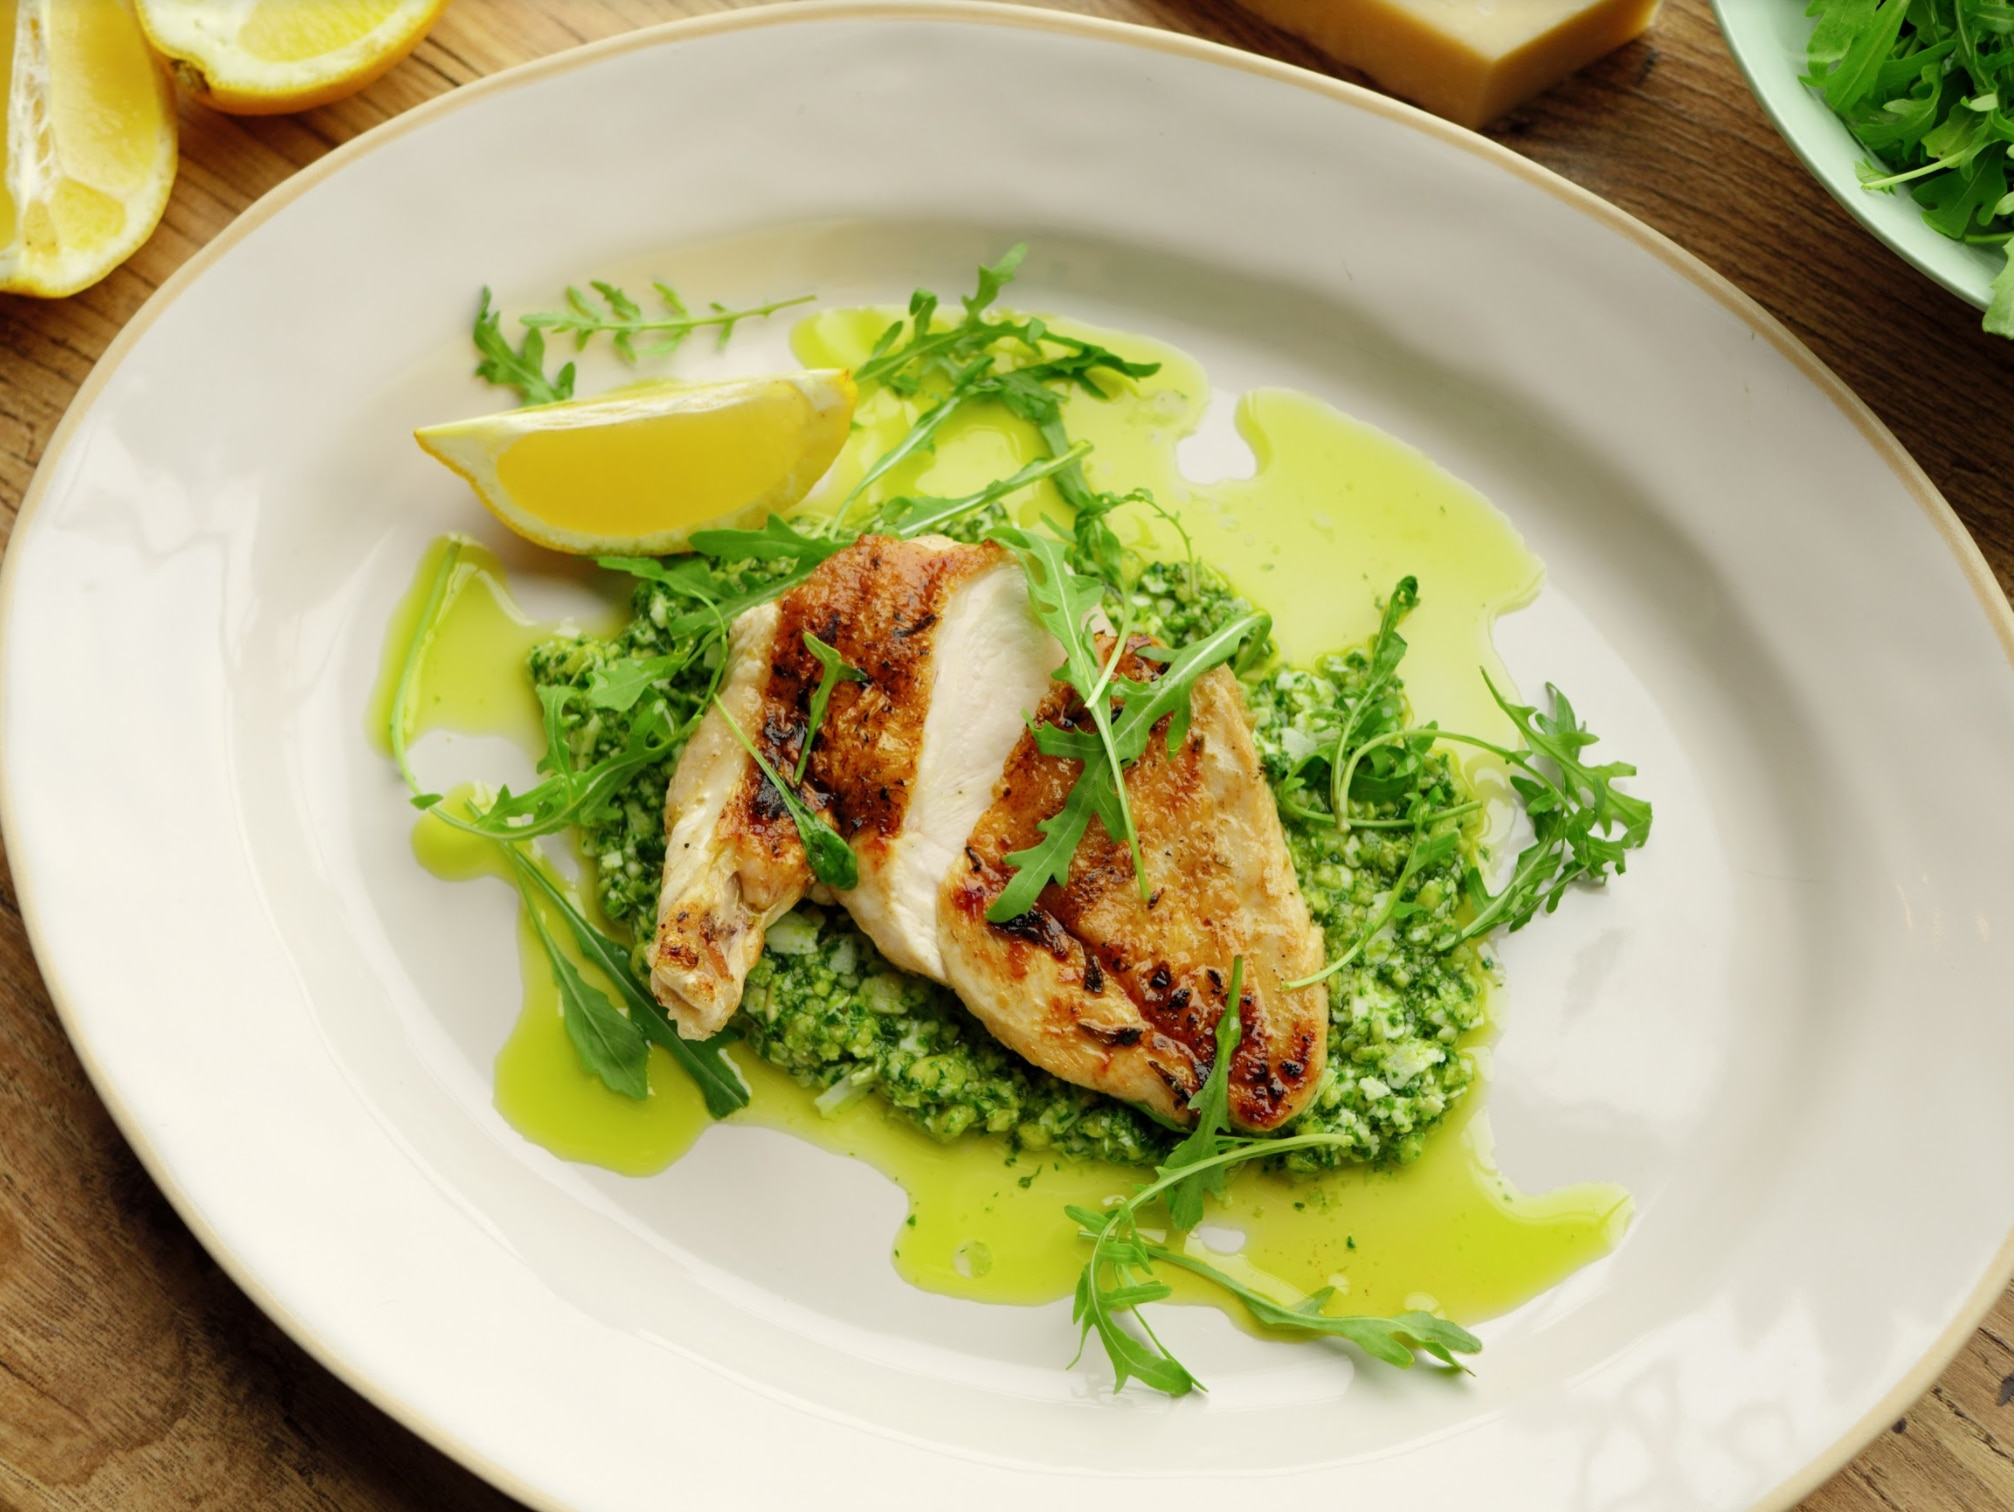 Jamie Oliver's Chicken Under a Brick with Mixed Herb and Almond Pesto